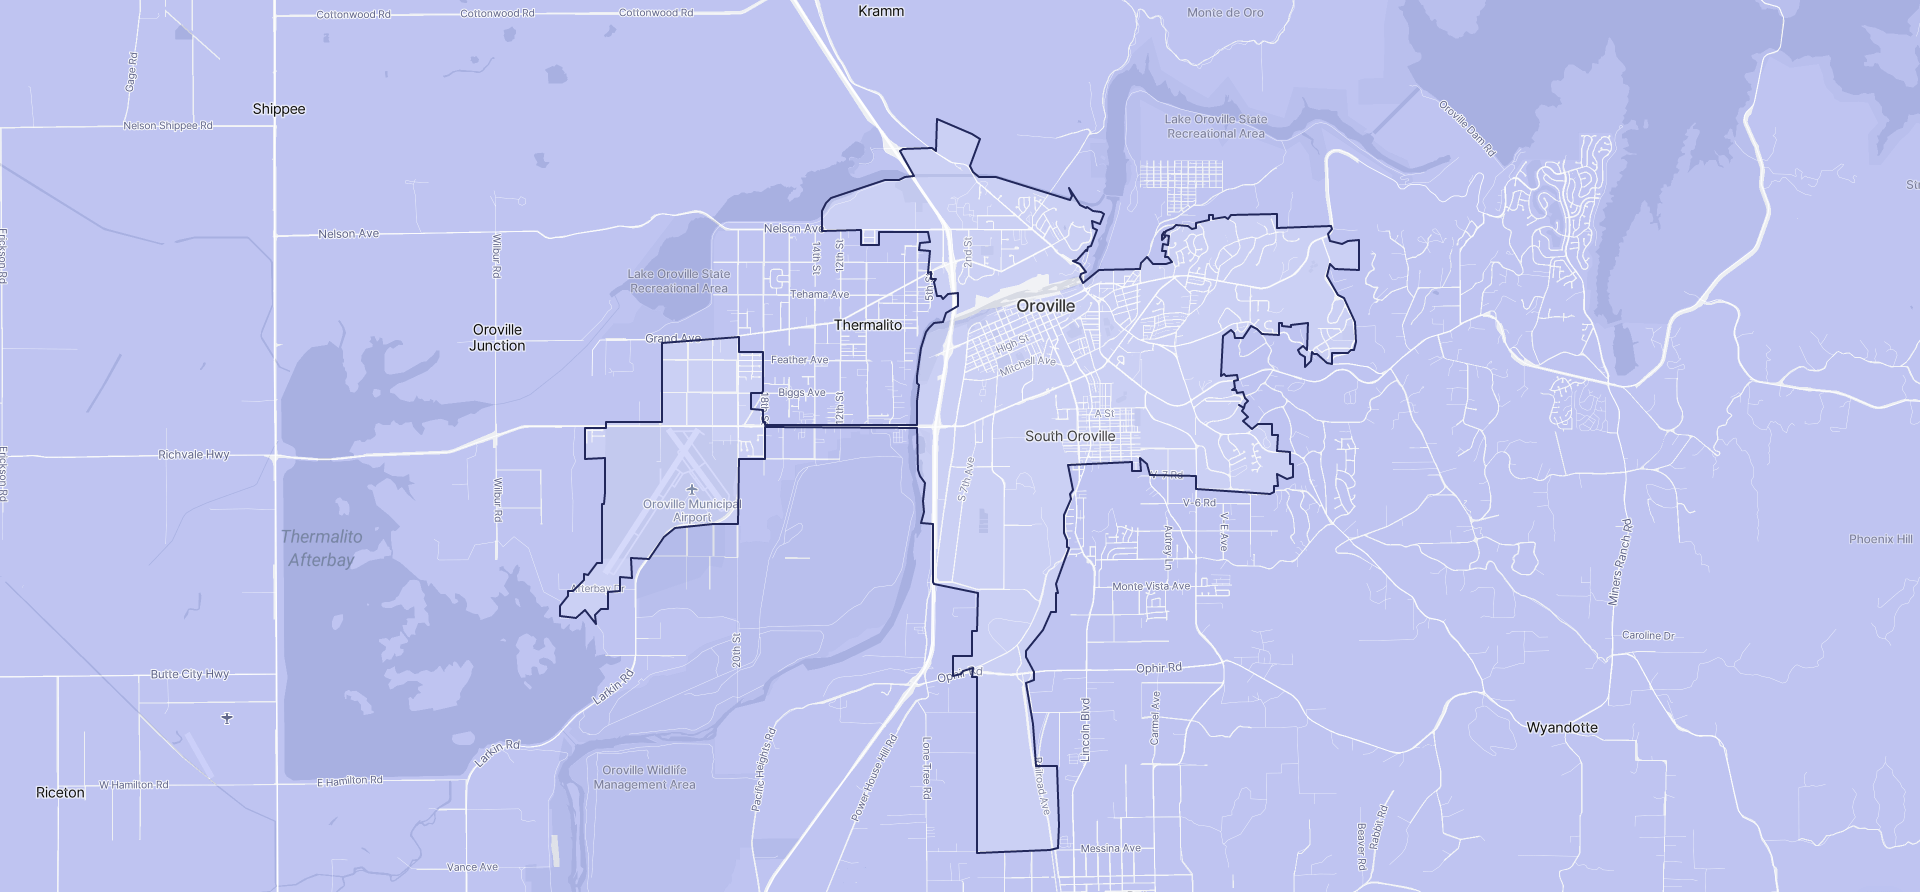 Image of Oroville boundaries on a map.